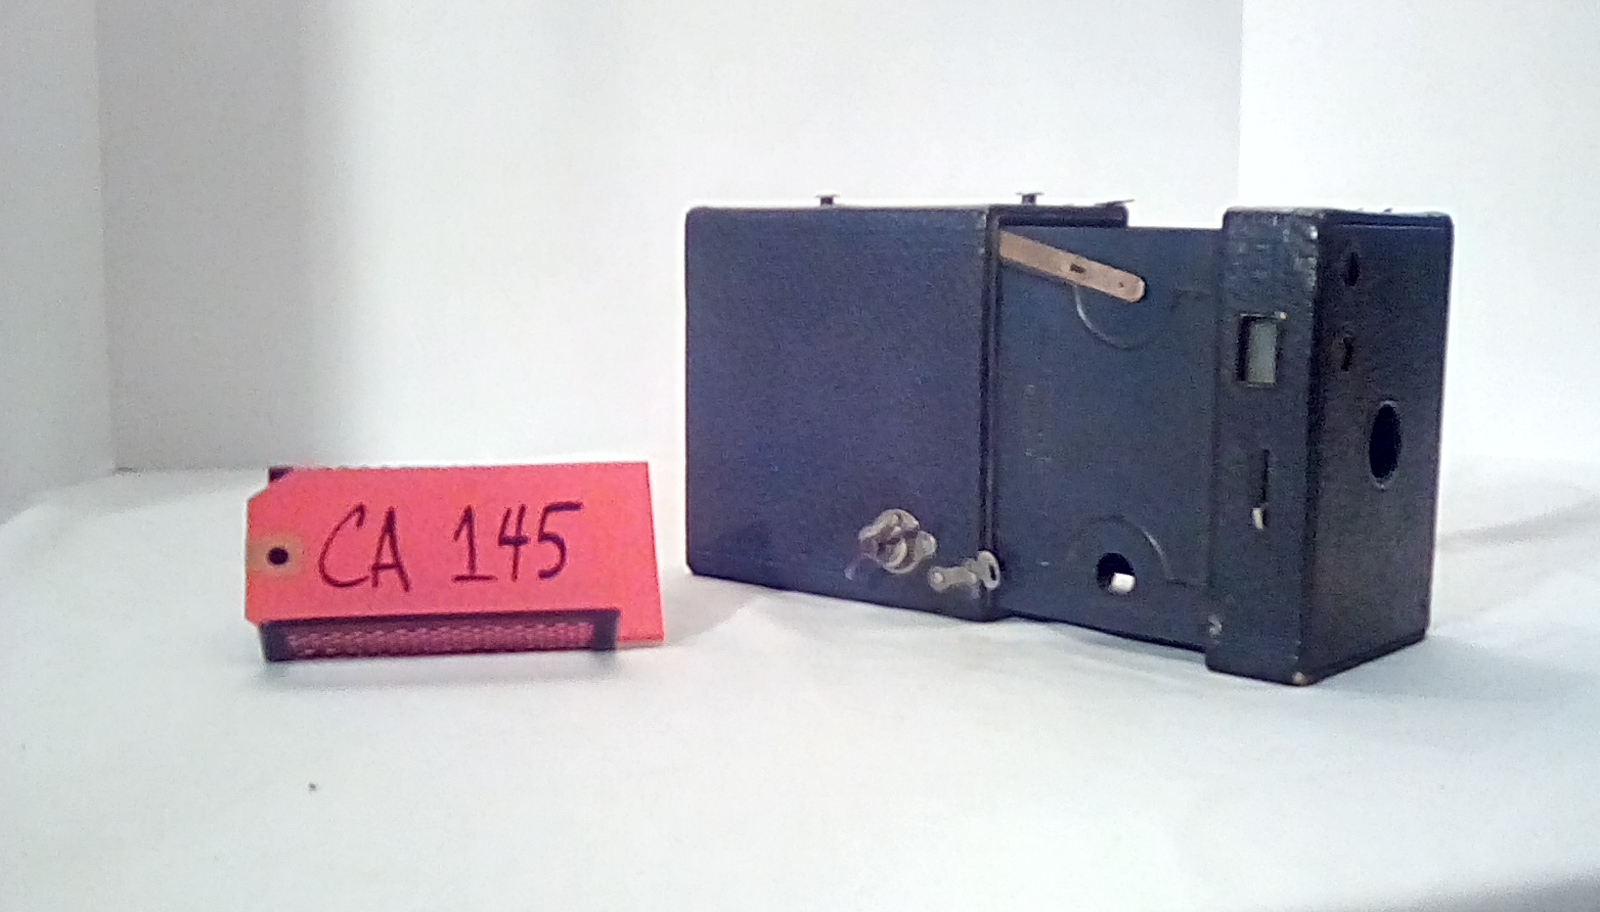 CA145 Brownie #2A, Model B, (3 pics of this camera), You need to wind  this camera  to open and close it. Tutorial available if needed.